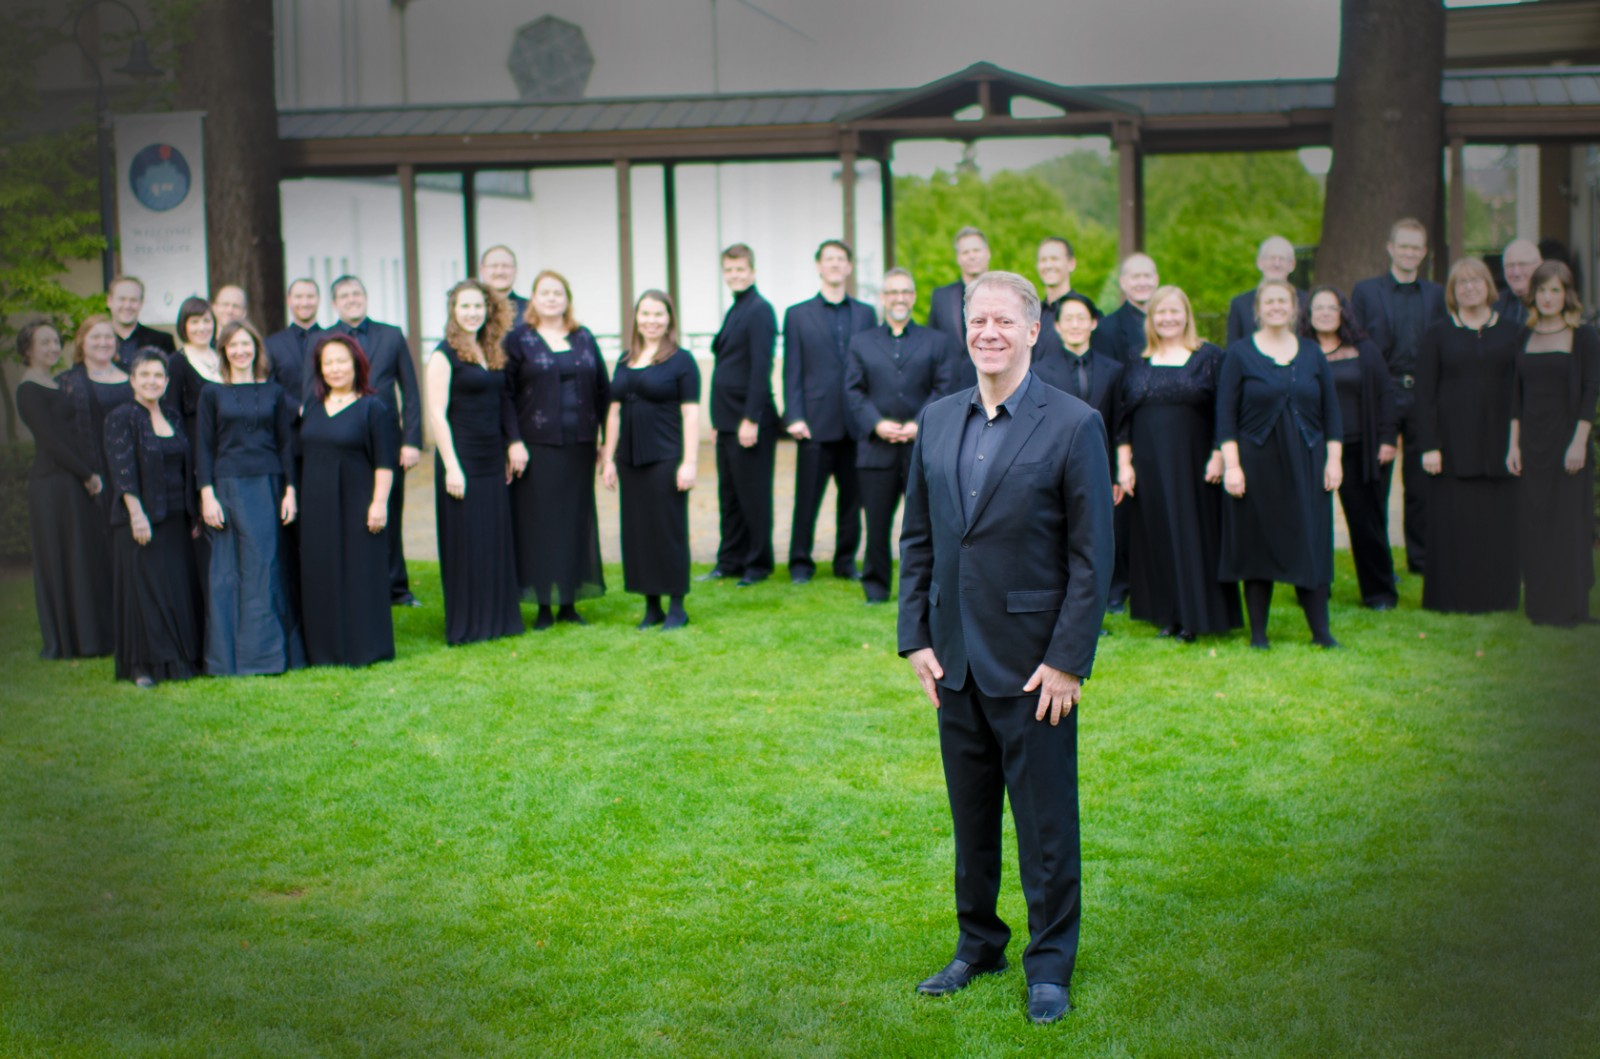 Choral Arts Northwest. Ailisa Newhall, Pinehurst Photography